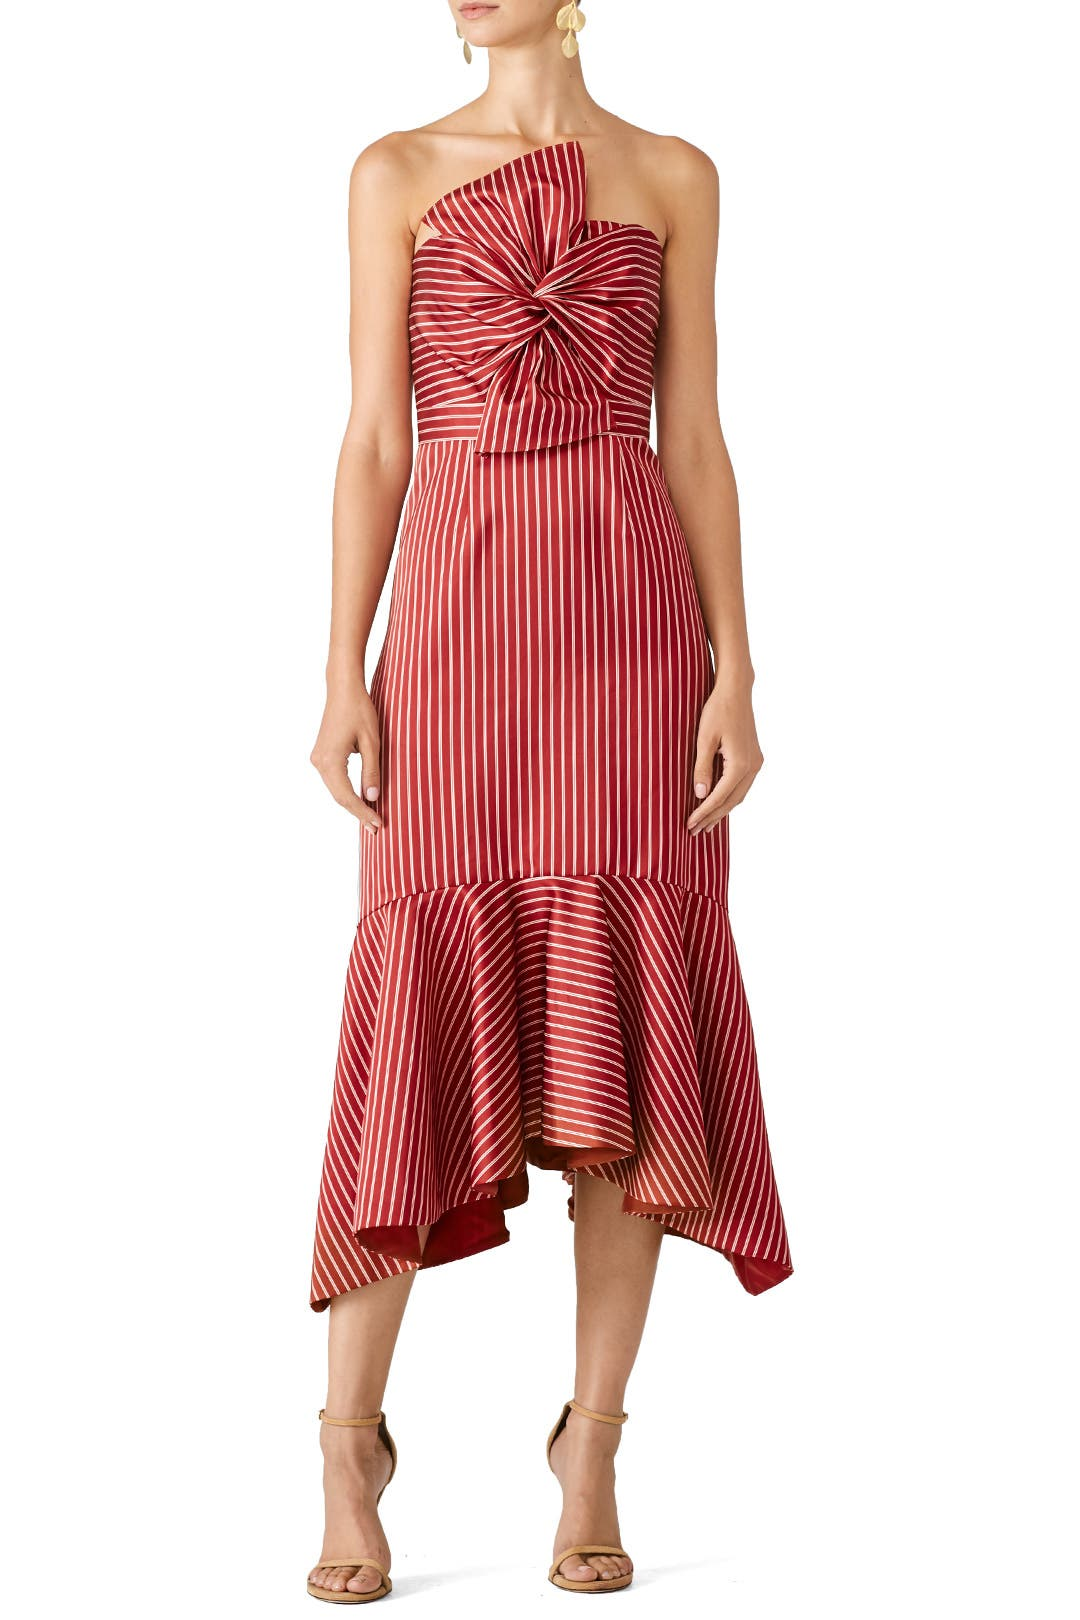 534672b0ae9 AMUR Eva Dress Red and white striped silk faille (100% Silk). Sheath.  Strapless. Straight neckline with bow. Hidden back zipper with hook-and-eye  closure.